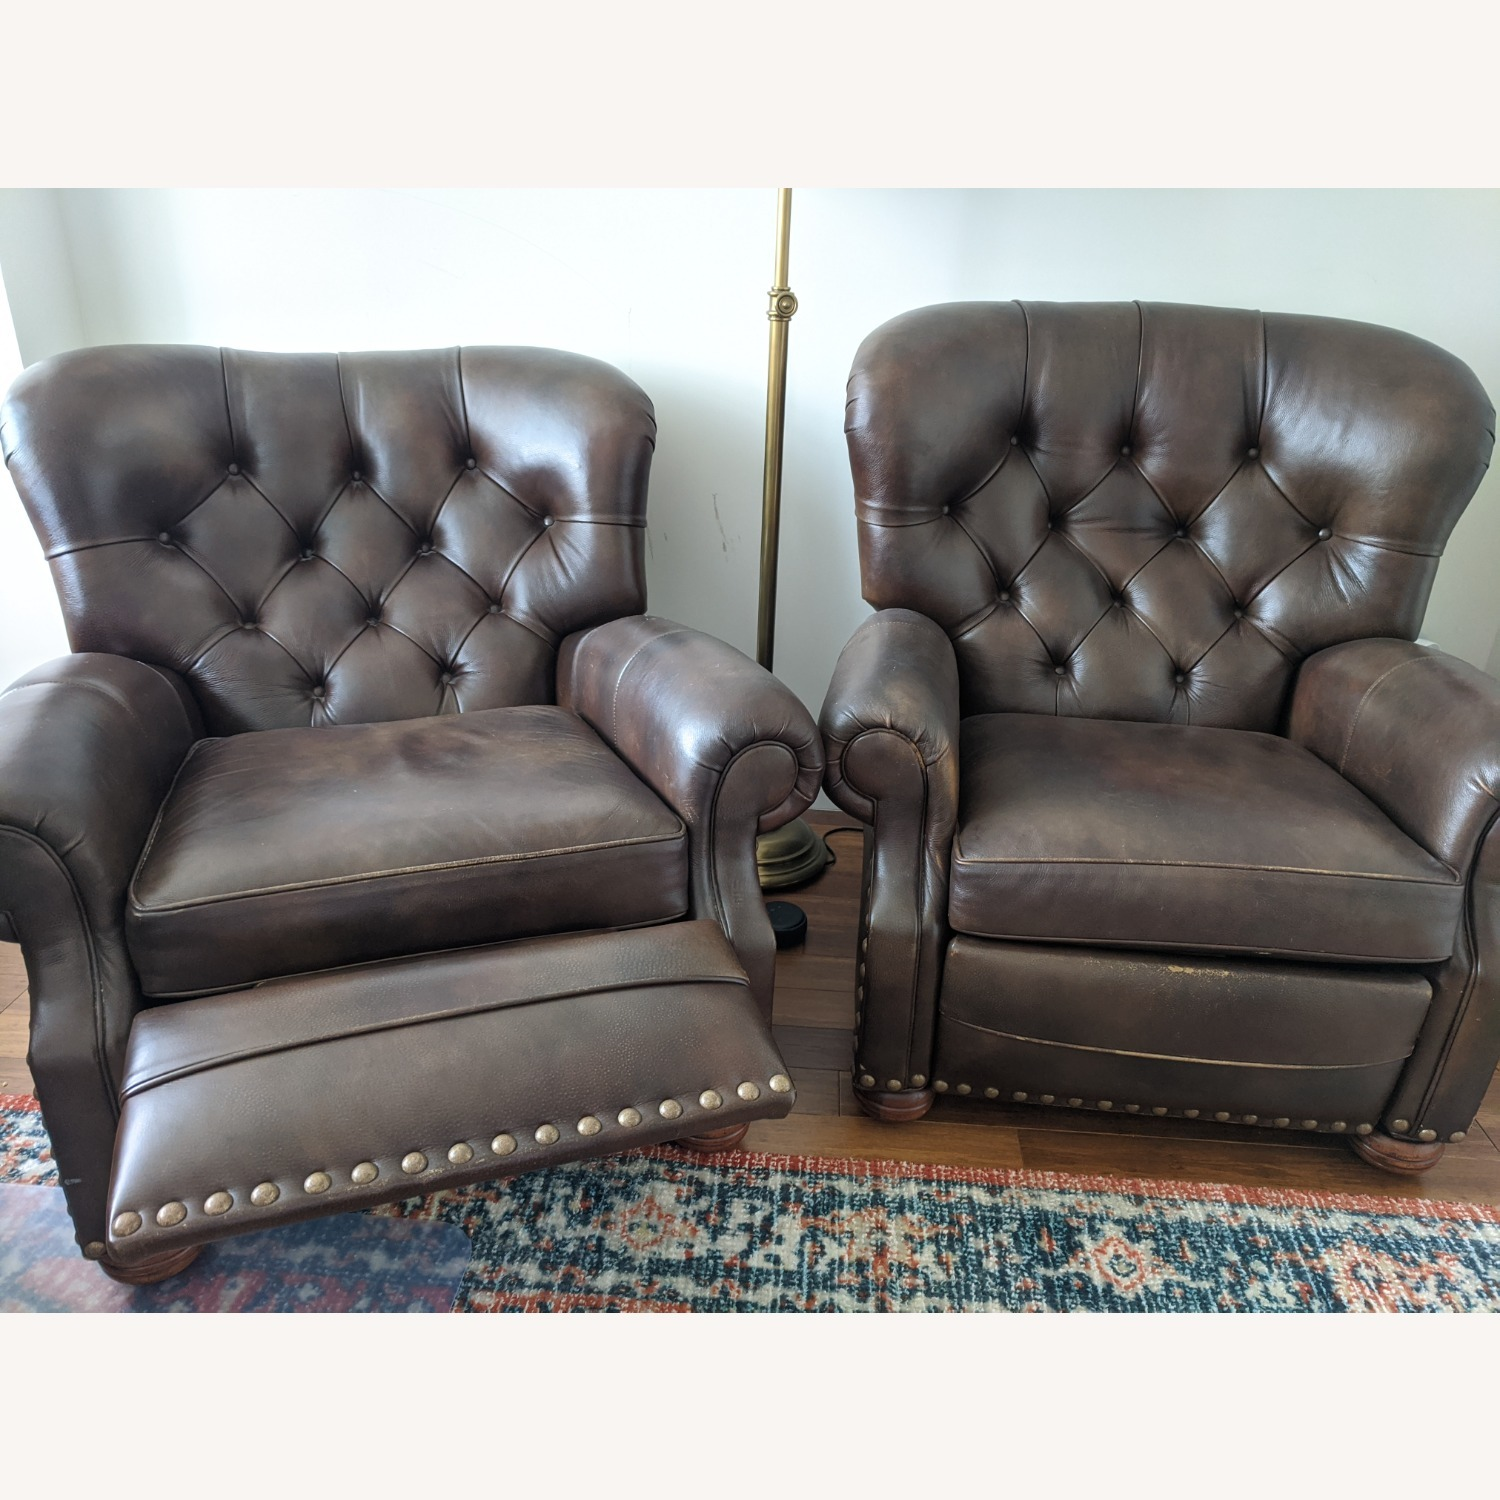 Ethan Allen Leather Recliner Chair (2 avail) - image-4